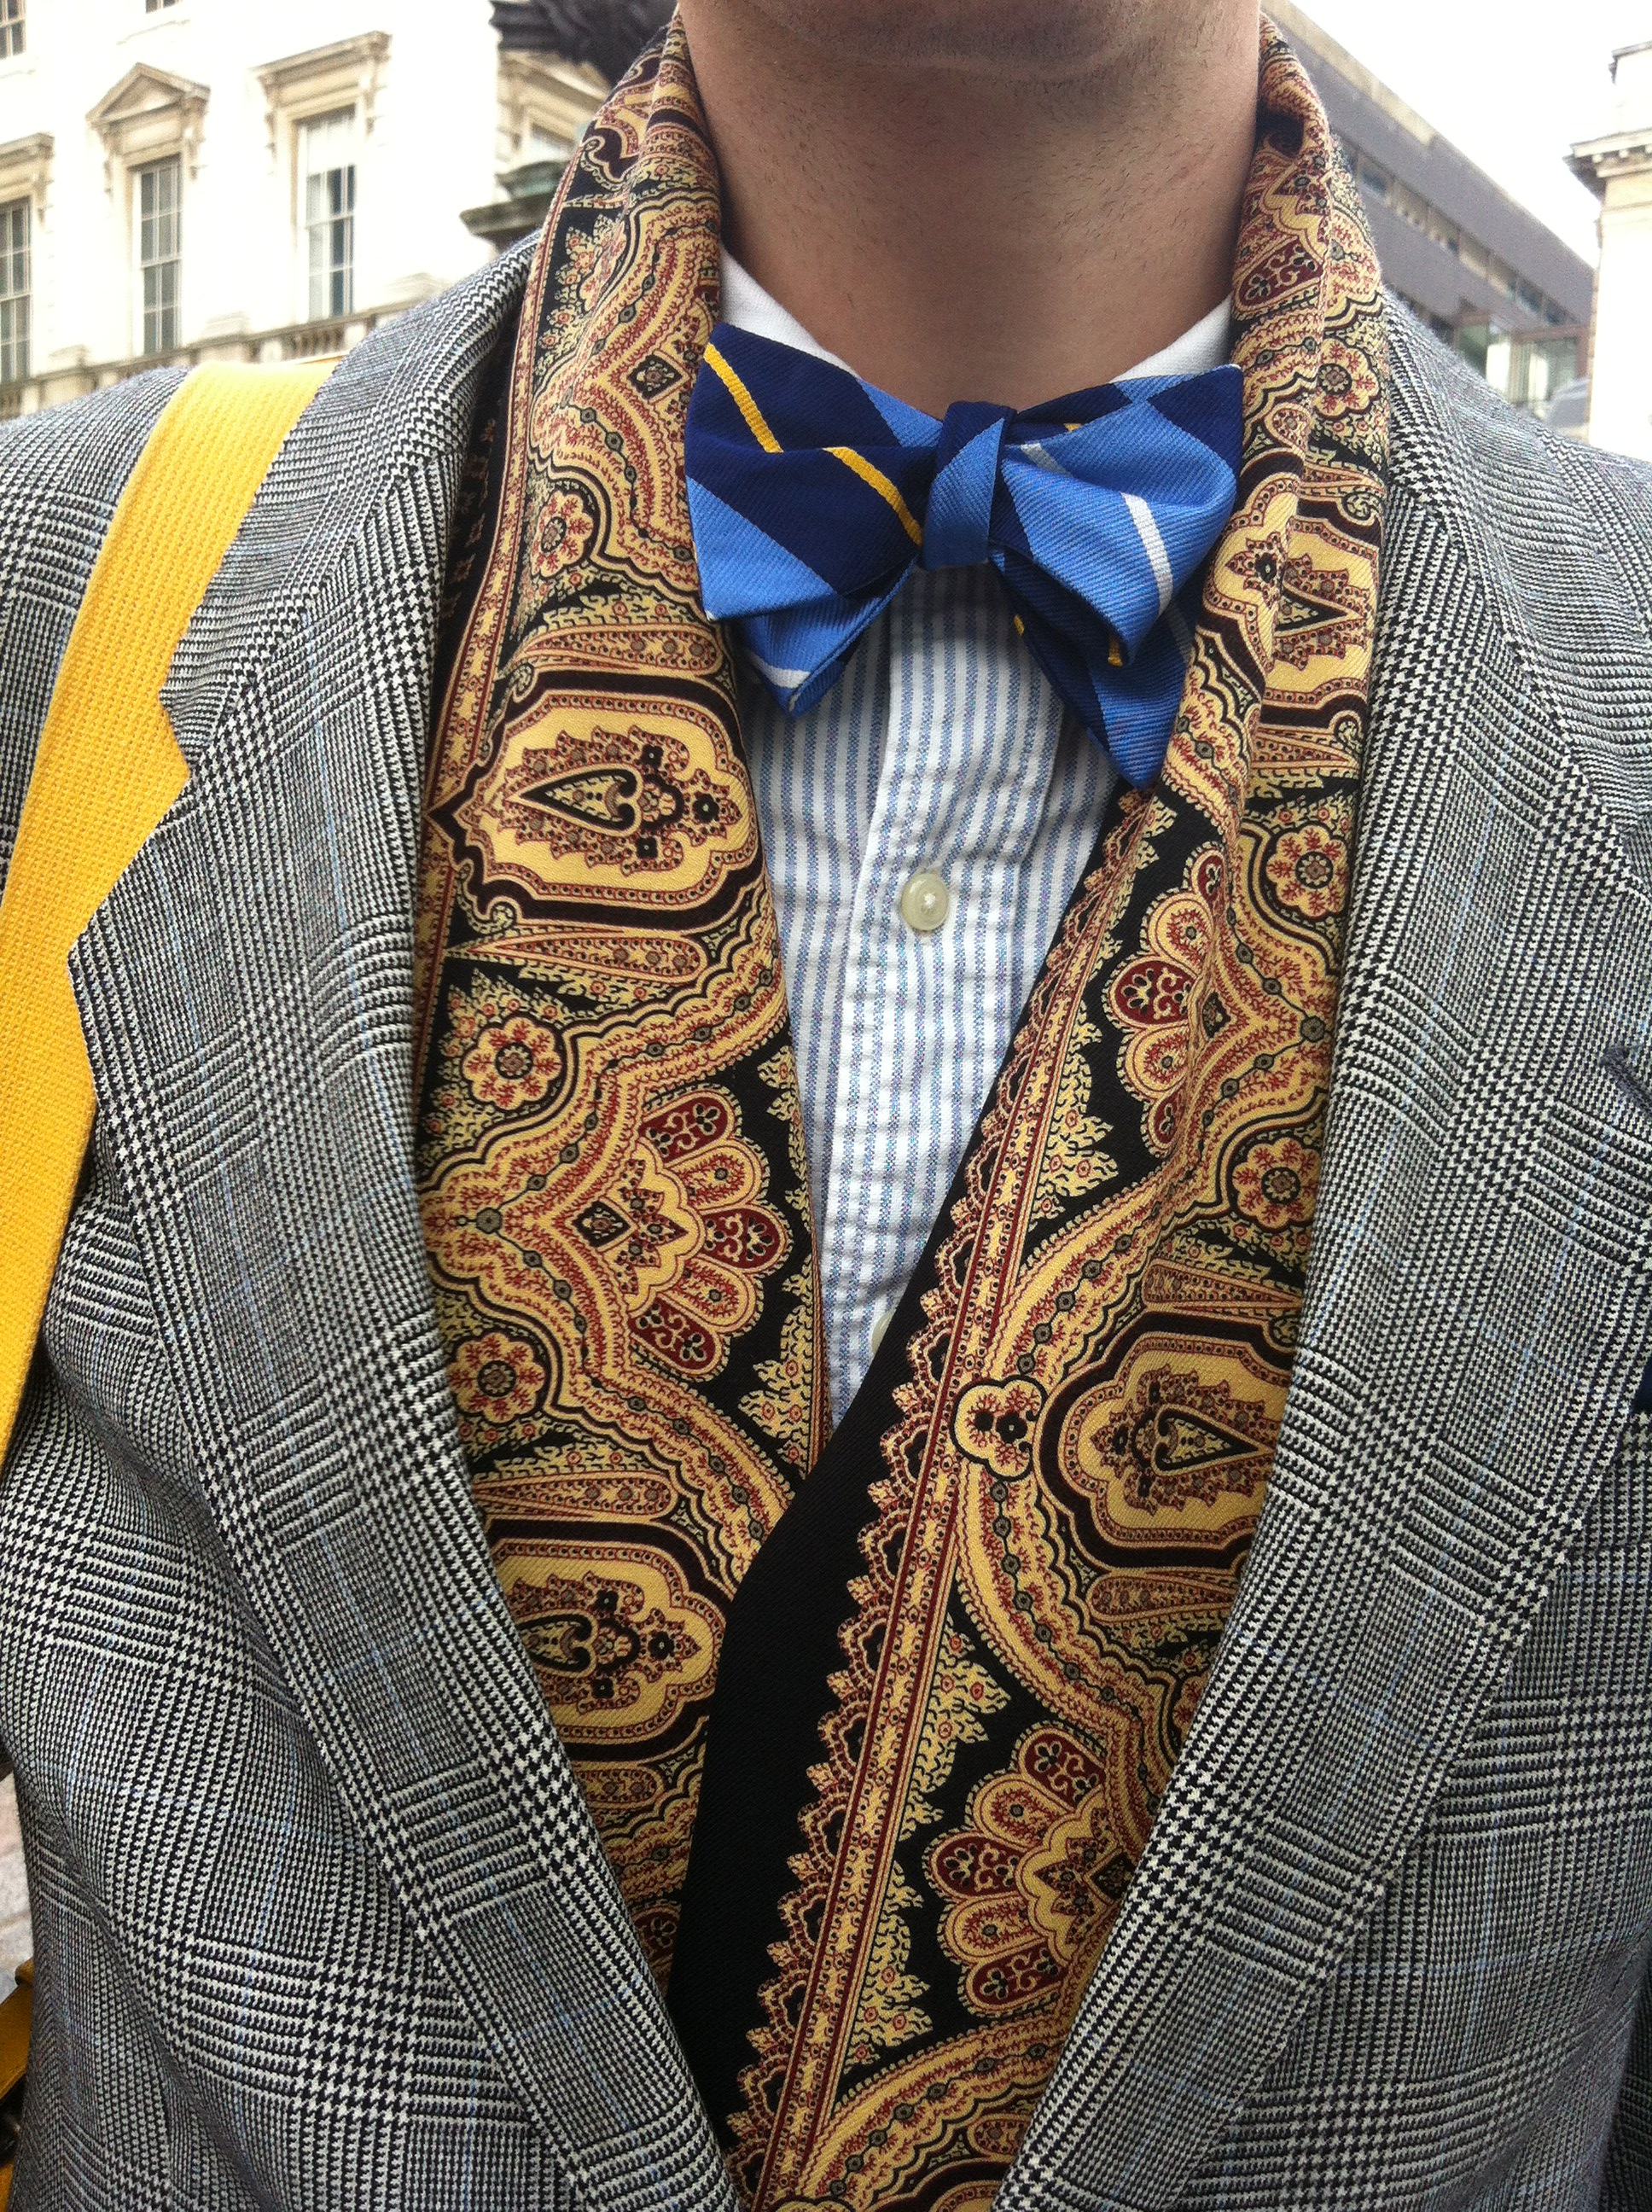 Streetstyle at London Fashion Week AW13